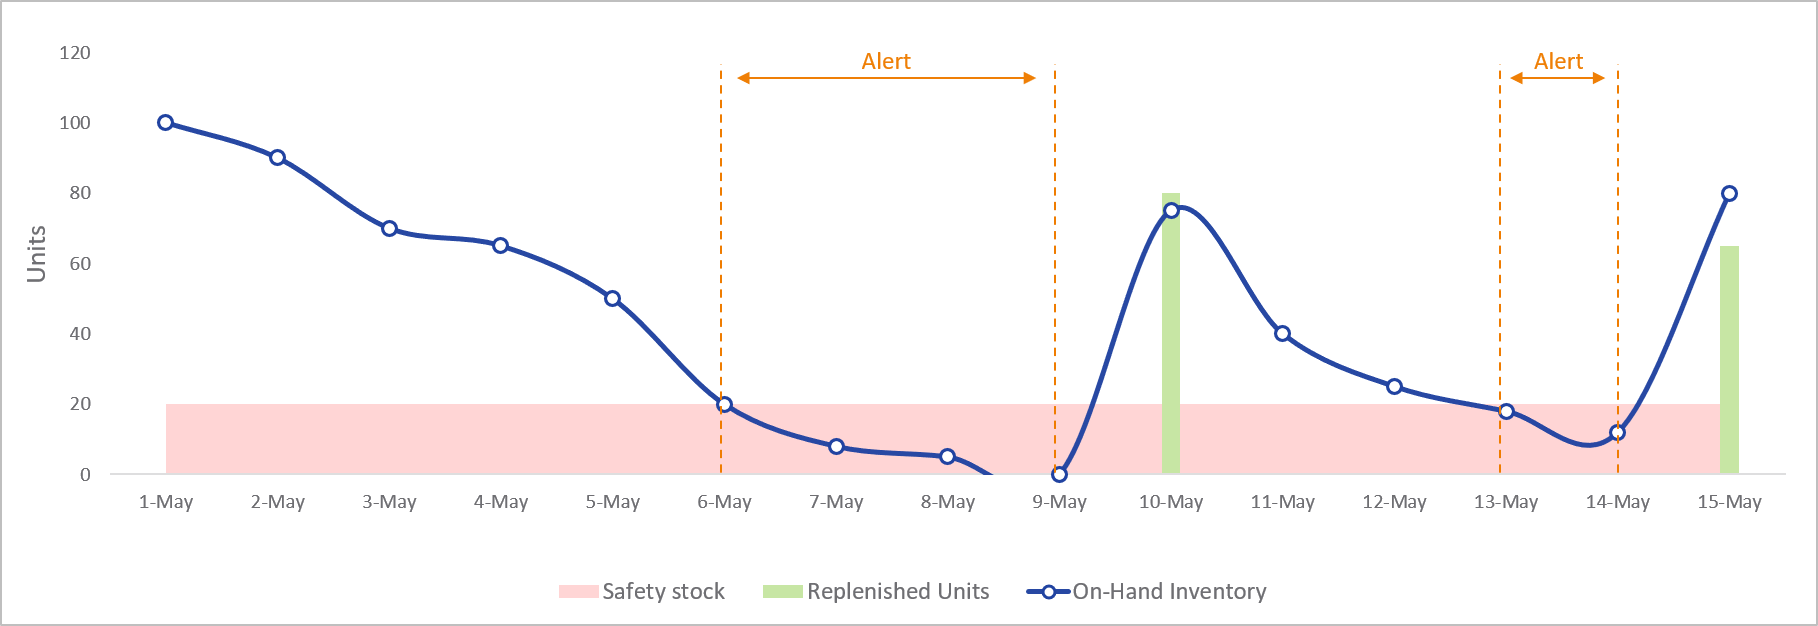 Safety stock levels not providing adequate lead time to prevent out-of-stock issues